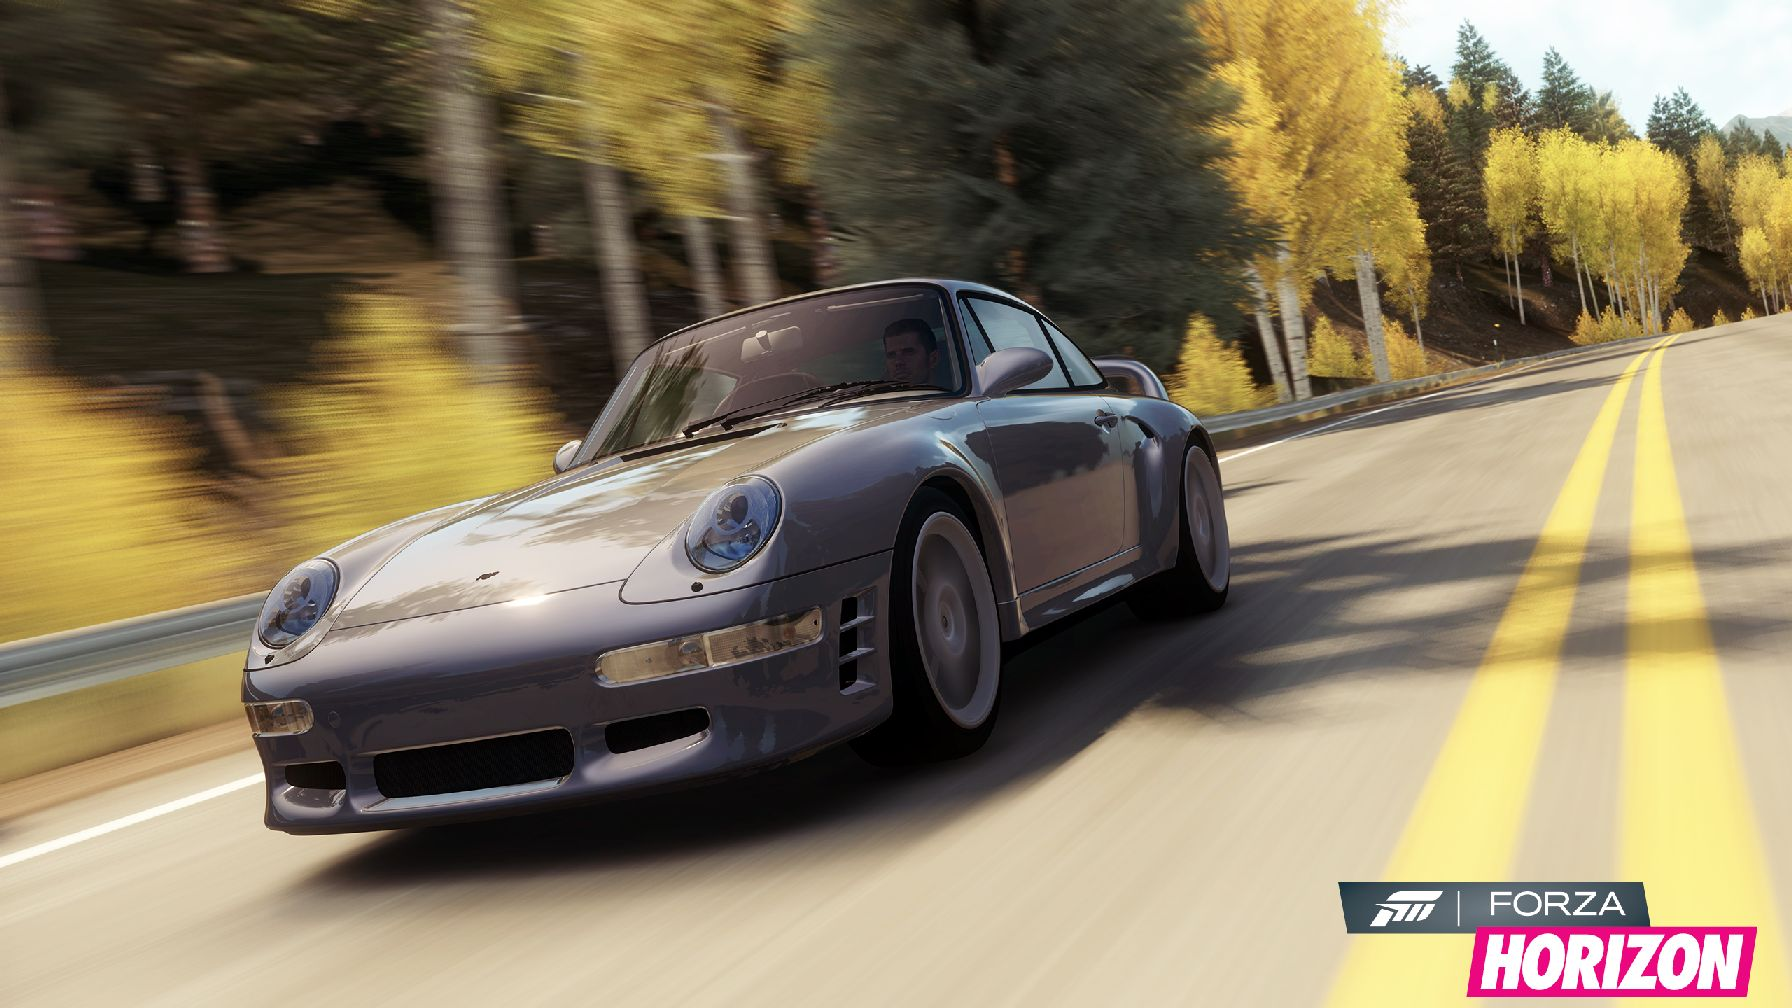 Free Download Racing Cars Wallpapers Forza Horizon Gets Free 1000 Club Dlc With New